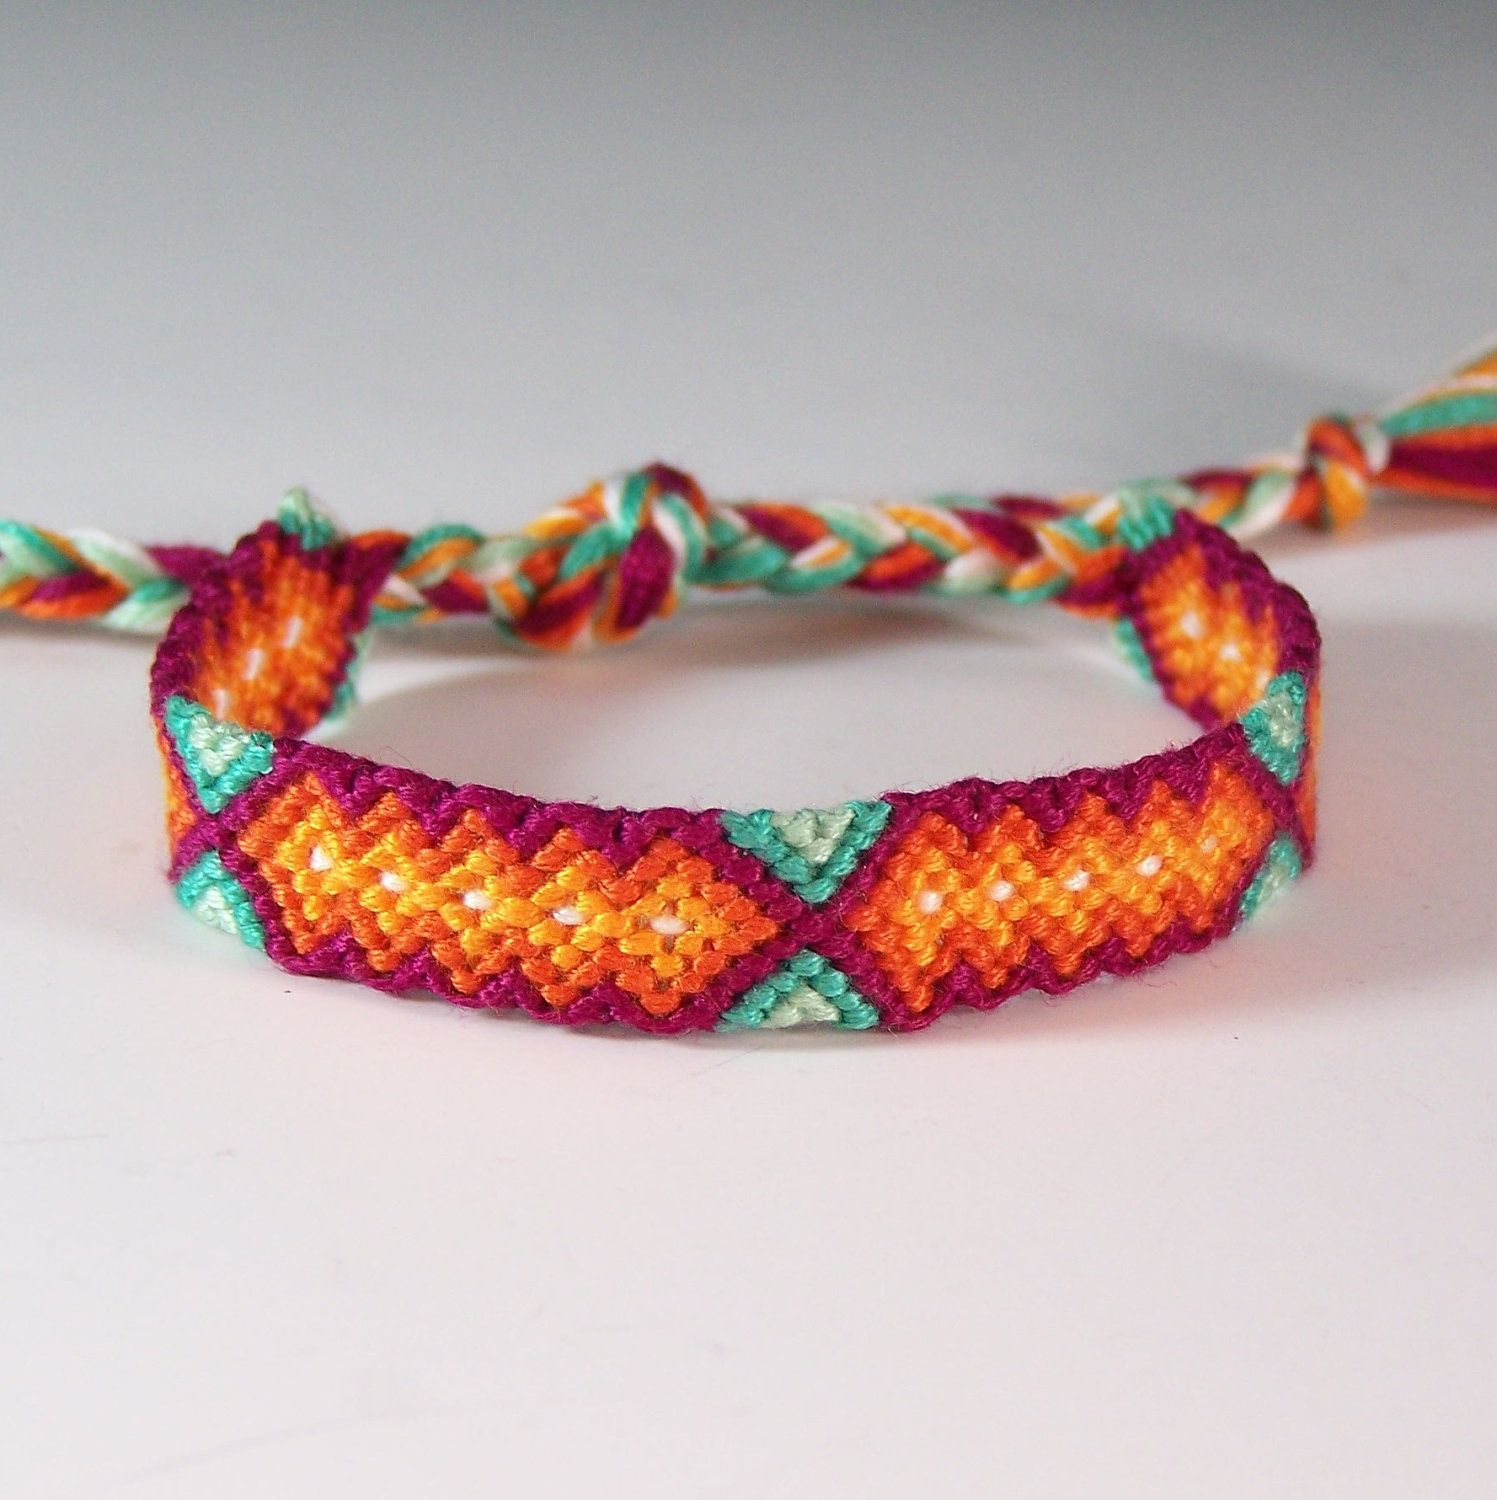 classic braid pastel projects with a pattern free chevron bracelet on how try friendship pictures tutorial thread to embroidery